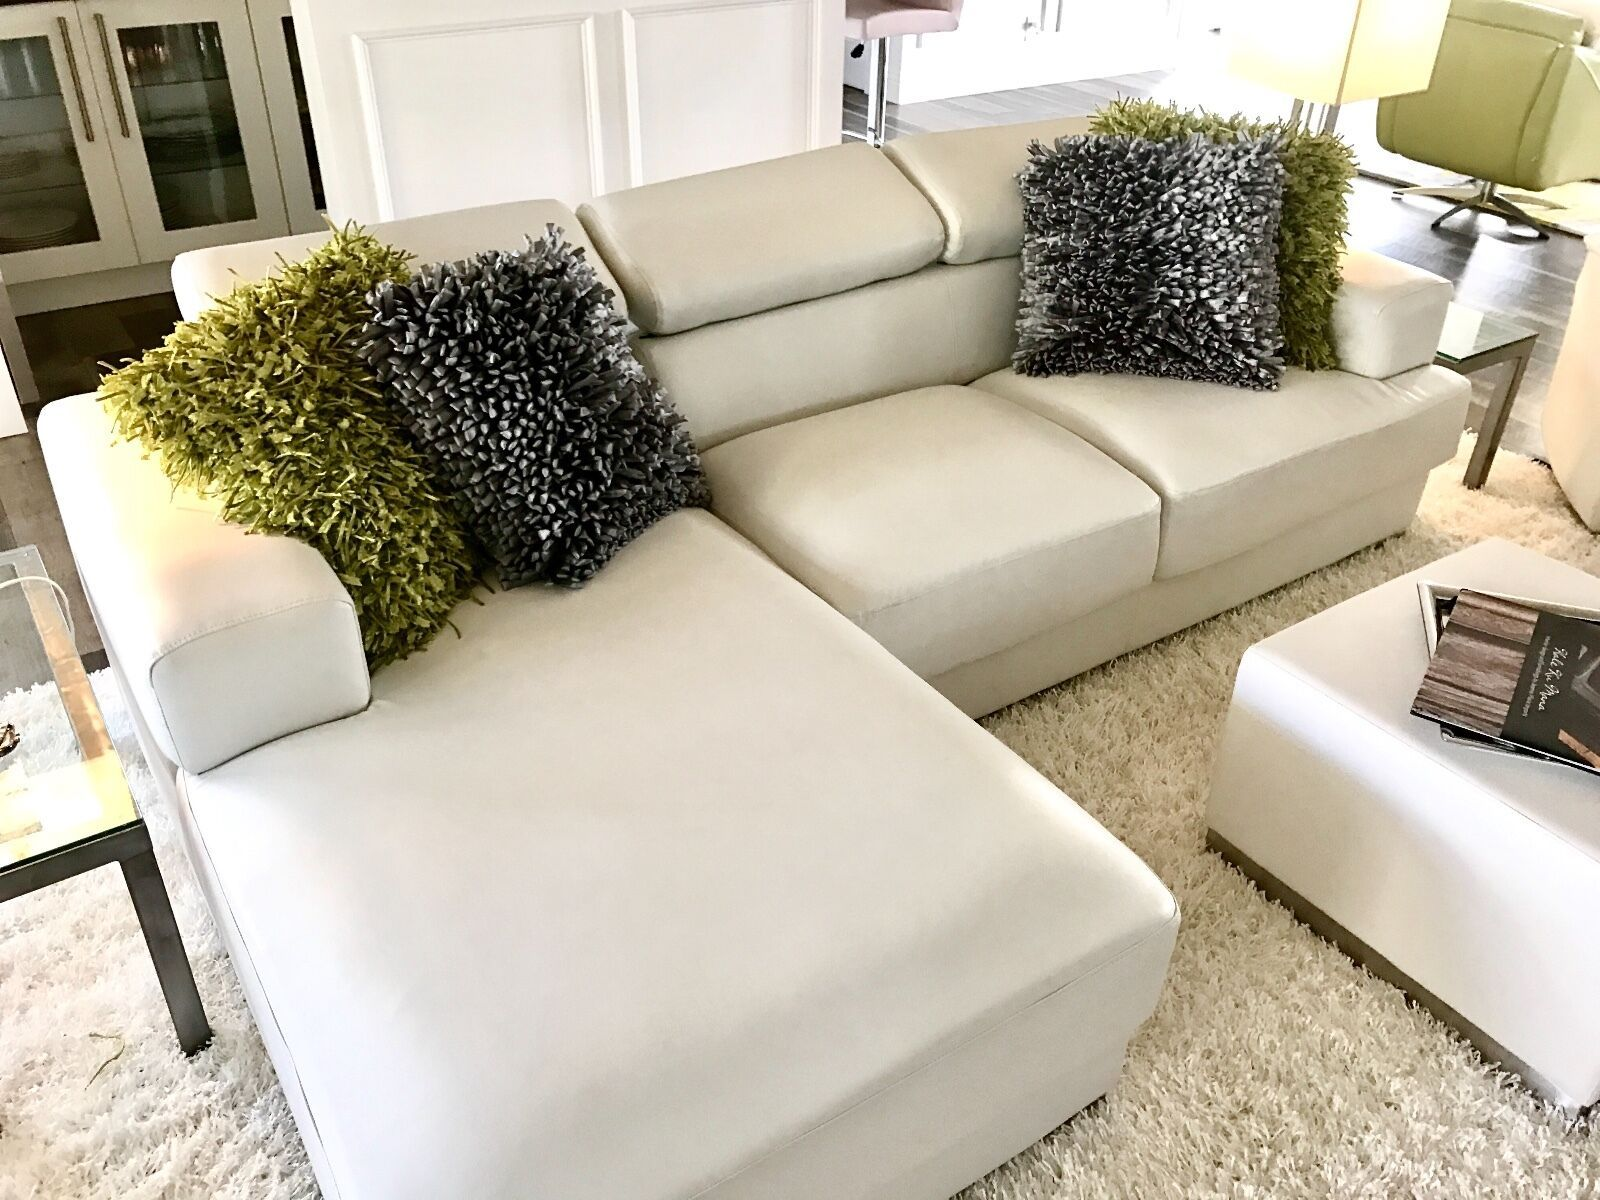 New Bonded White Leather Sofa With Chase For Sale White Sofa Ideas Of White Sofa Whitesofa Sofa With Images Best Leather Sofa White Leather Sofas Leather Sofa Bed